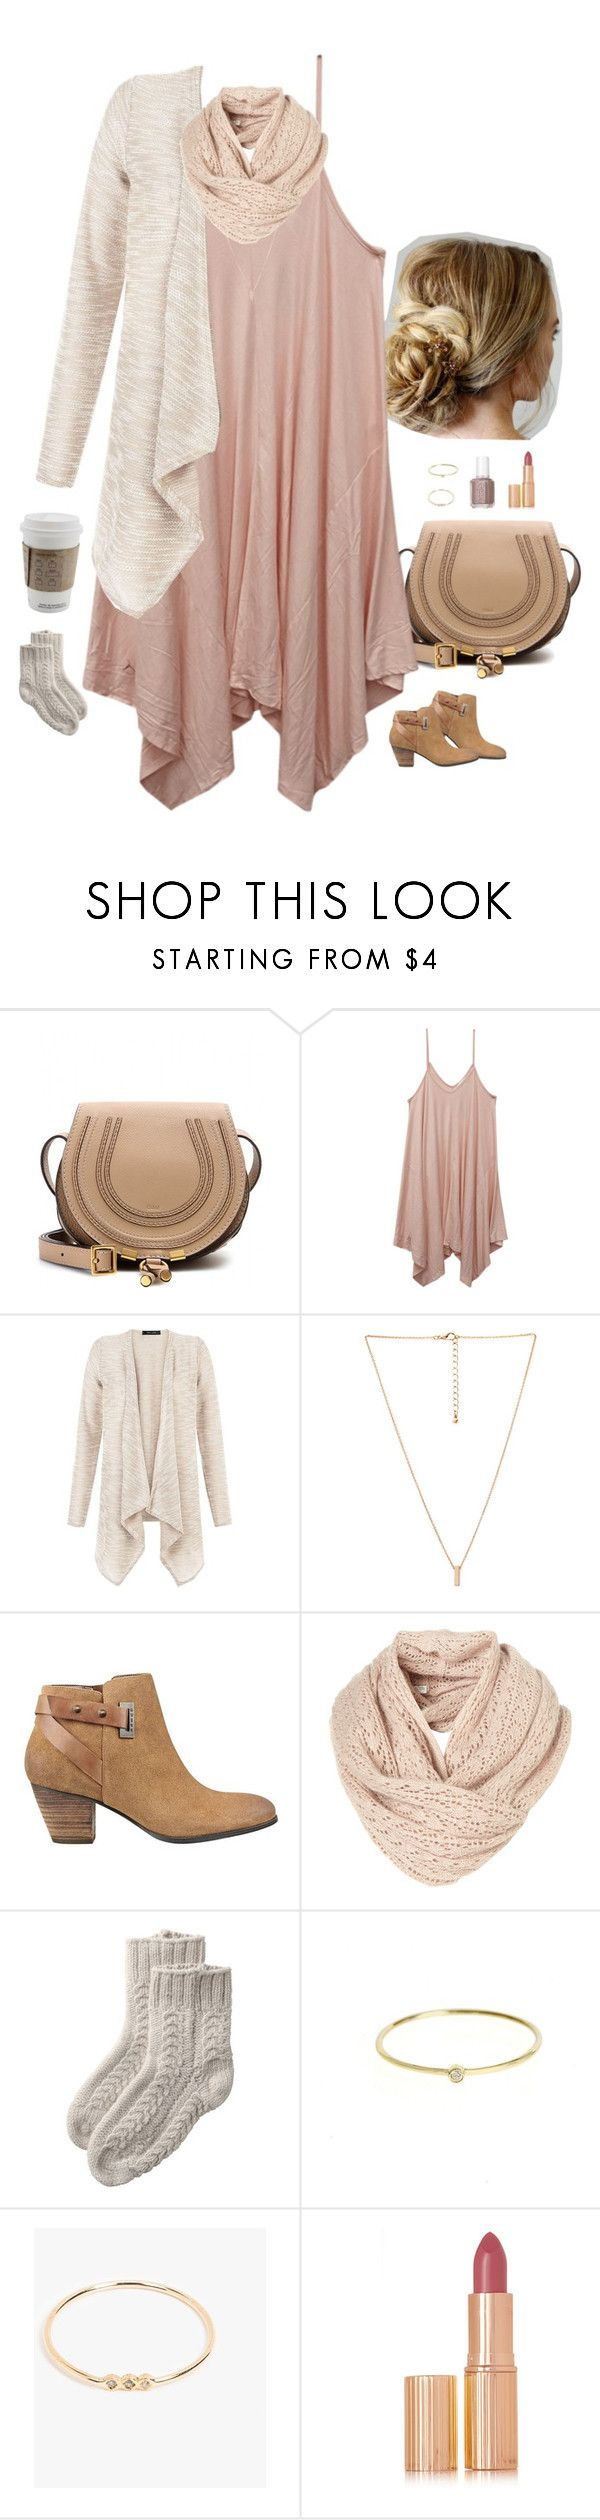 """Untitled #3322"" by somethinglikelove ❤ liked on Polyvore featuring Chloé, Wet Seal, Love 21, GUESS, Toast, Jennifer Meyer Jewelry, Jennie Kwon, Essie and Charlotte Tilbury"